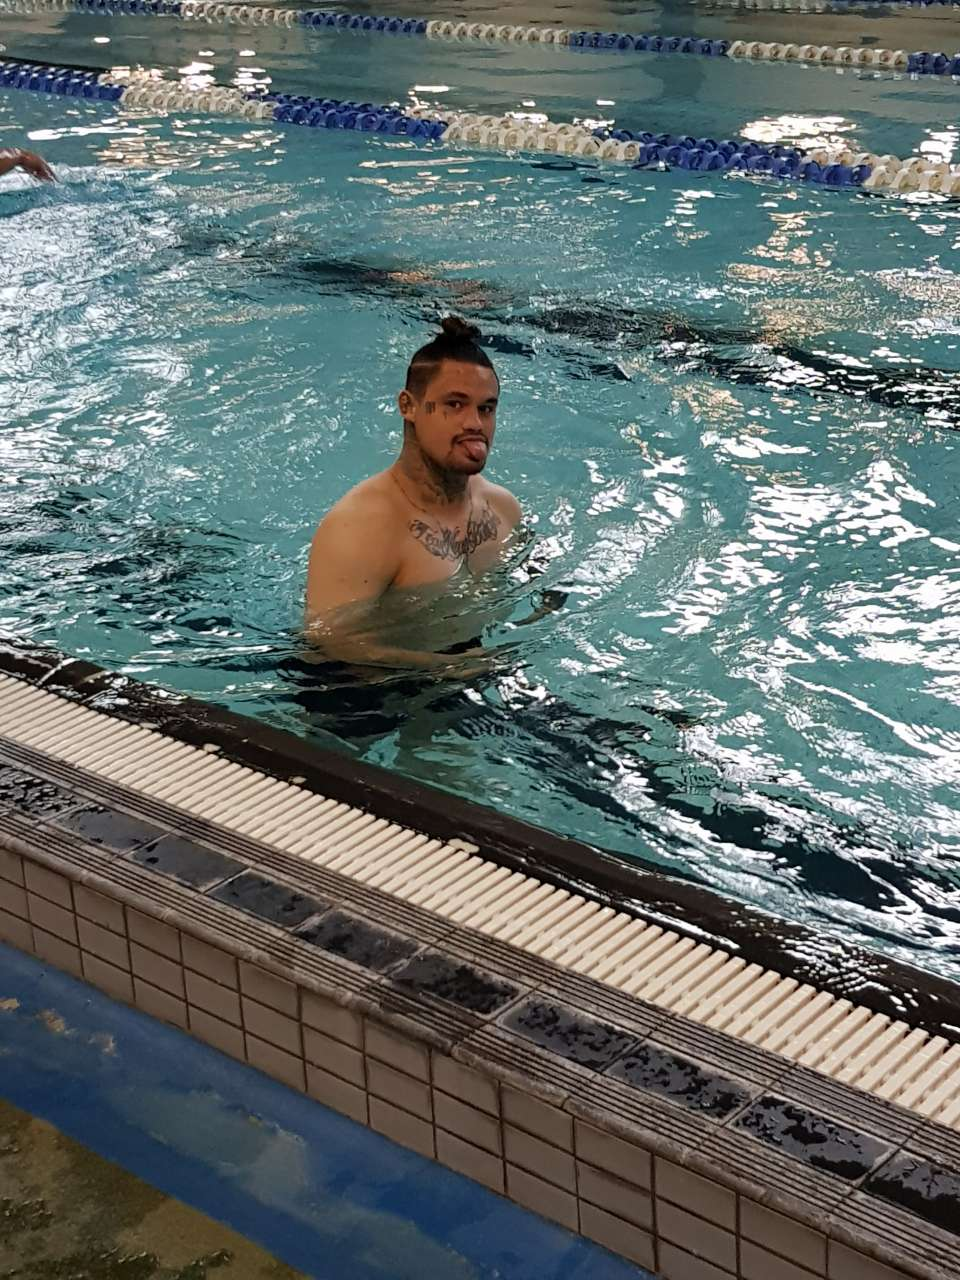 MOE Whanau had great day yesterday swimming at Jelly Park followed by lunch